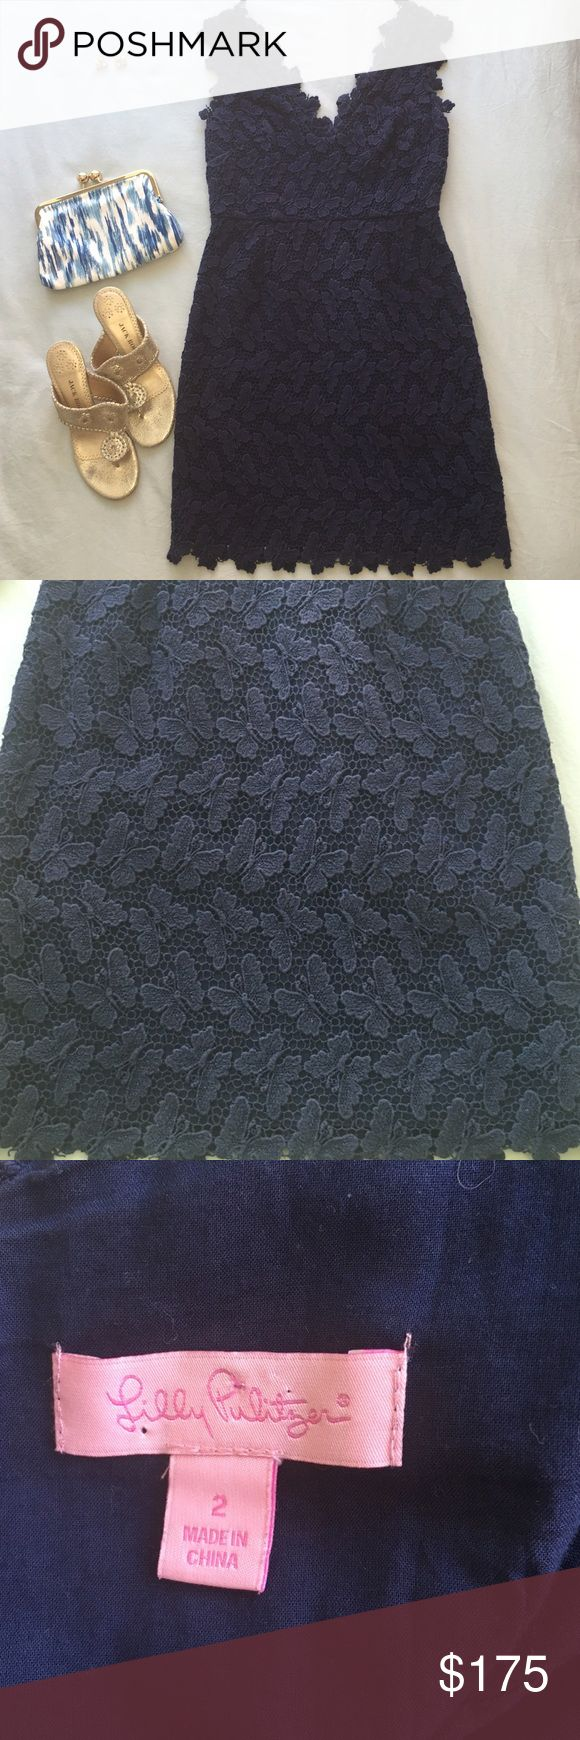 Lilly Pulitzer Papillion Lace Reeve dress navy Gorgeous butterfly print dress from Lilly Pulitzer.  Double V front and back with an extremely flattering sheath fit.  Great for a formal event, wedding, or dinner out. Bra keeps in shoulders to keep everything in place.  Previously loved but in very good condition. No trades, no transactions outside posh. Lilly Pulitzer Dresses